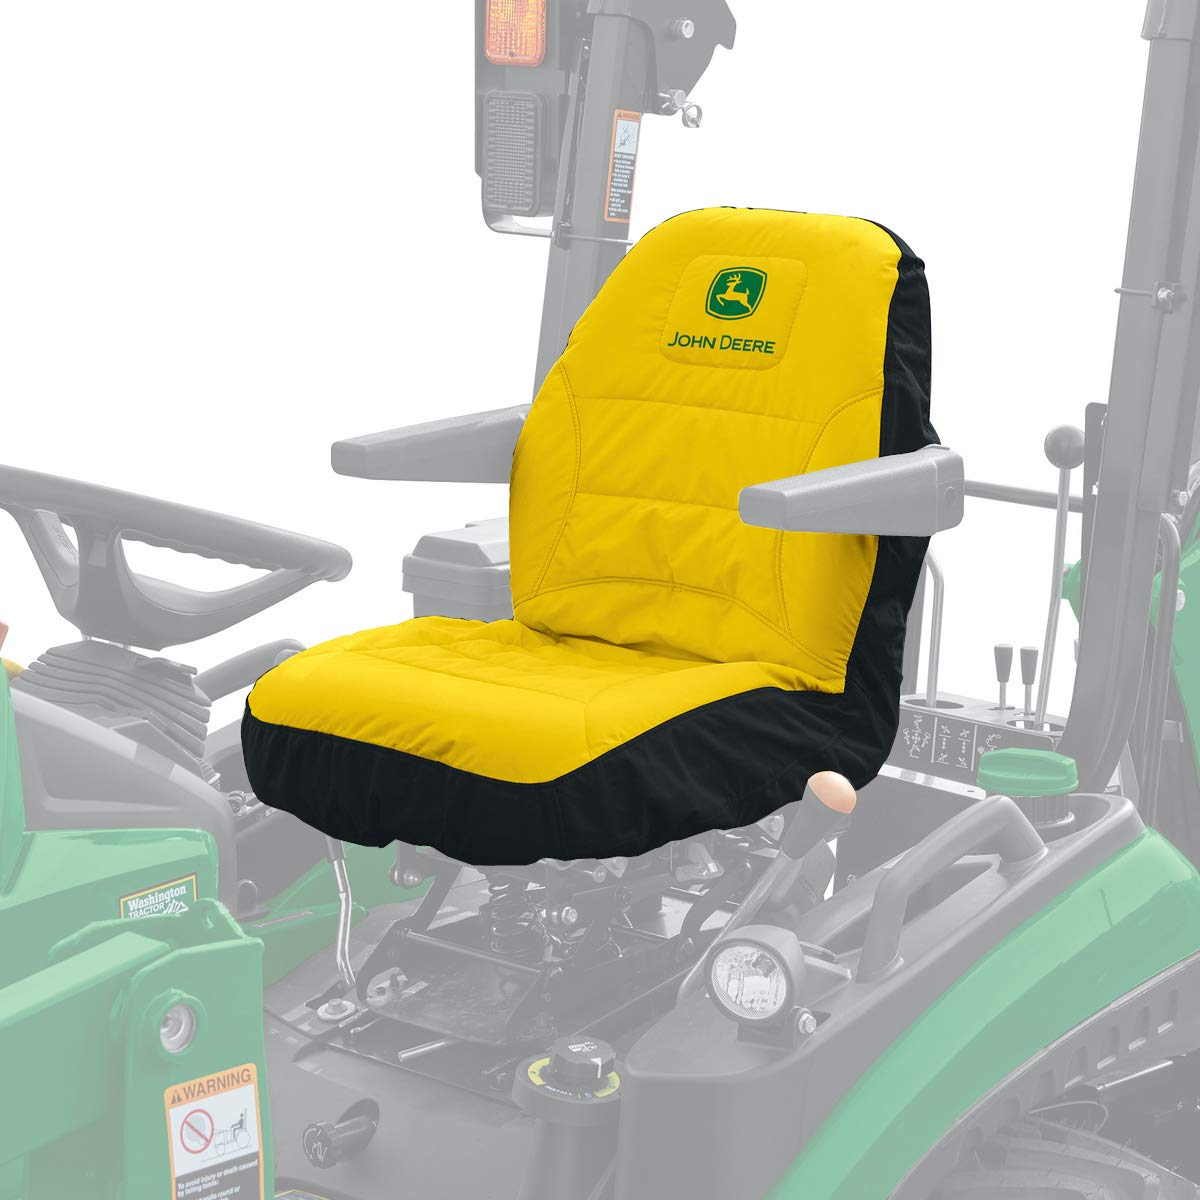 John Deere Seat Cover - Cut (1025 & 2025) LP68694 by John Deere